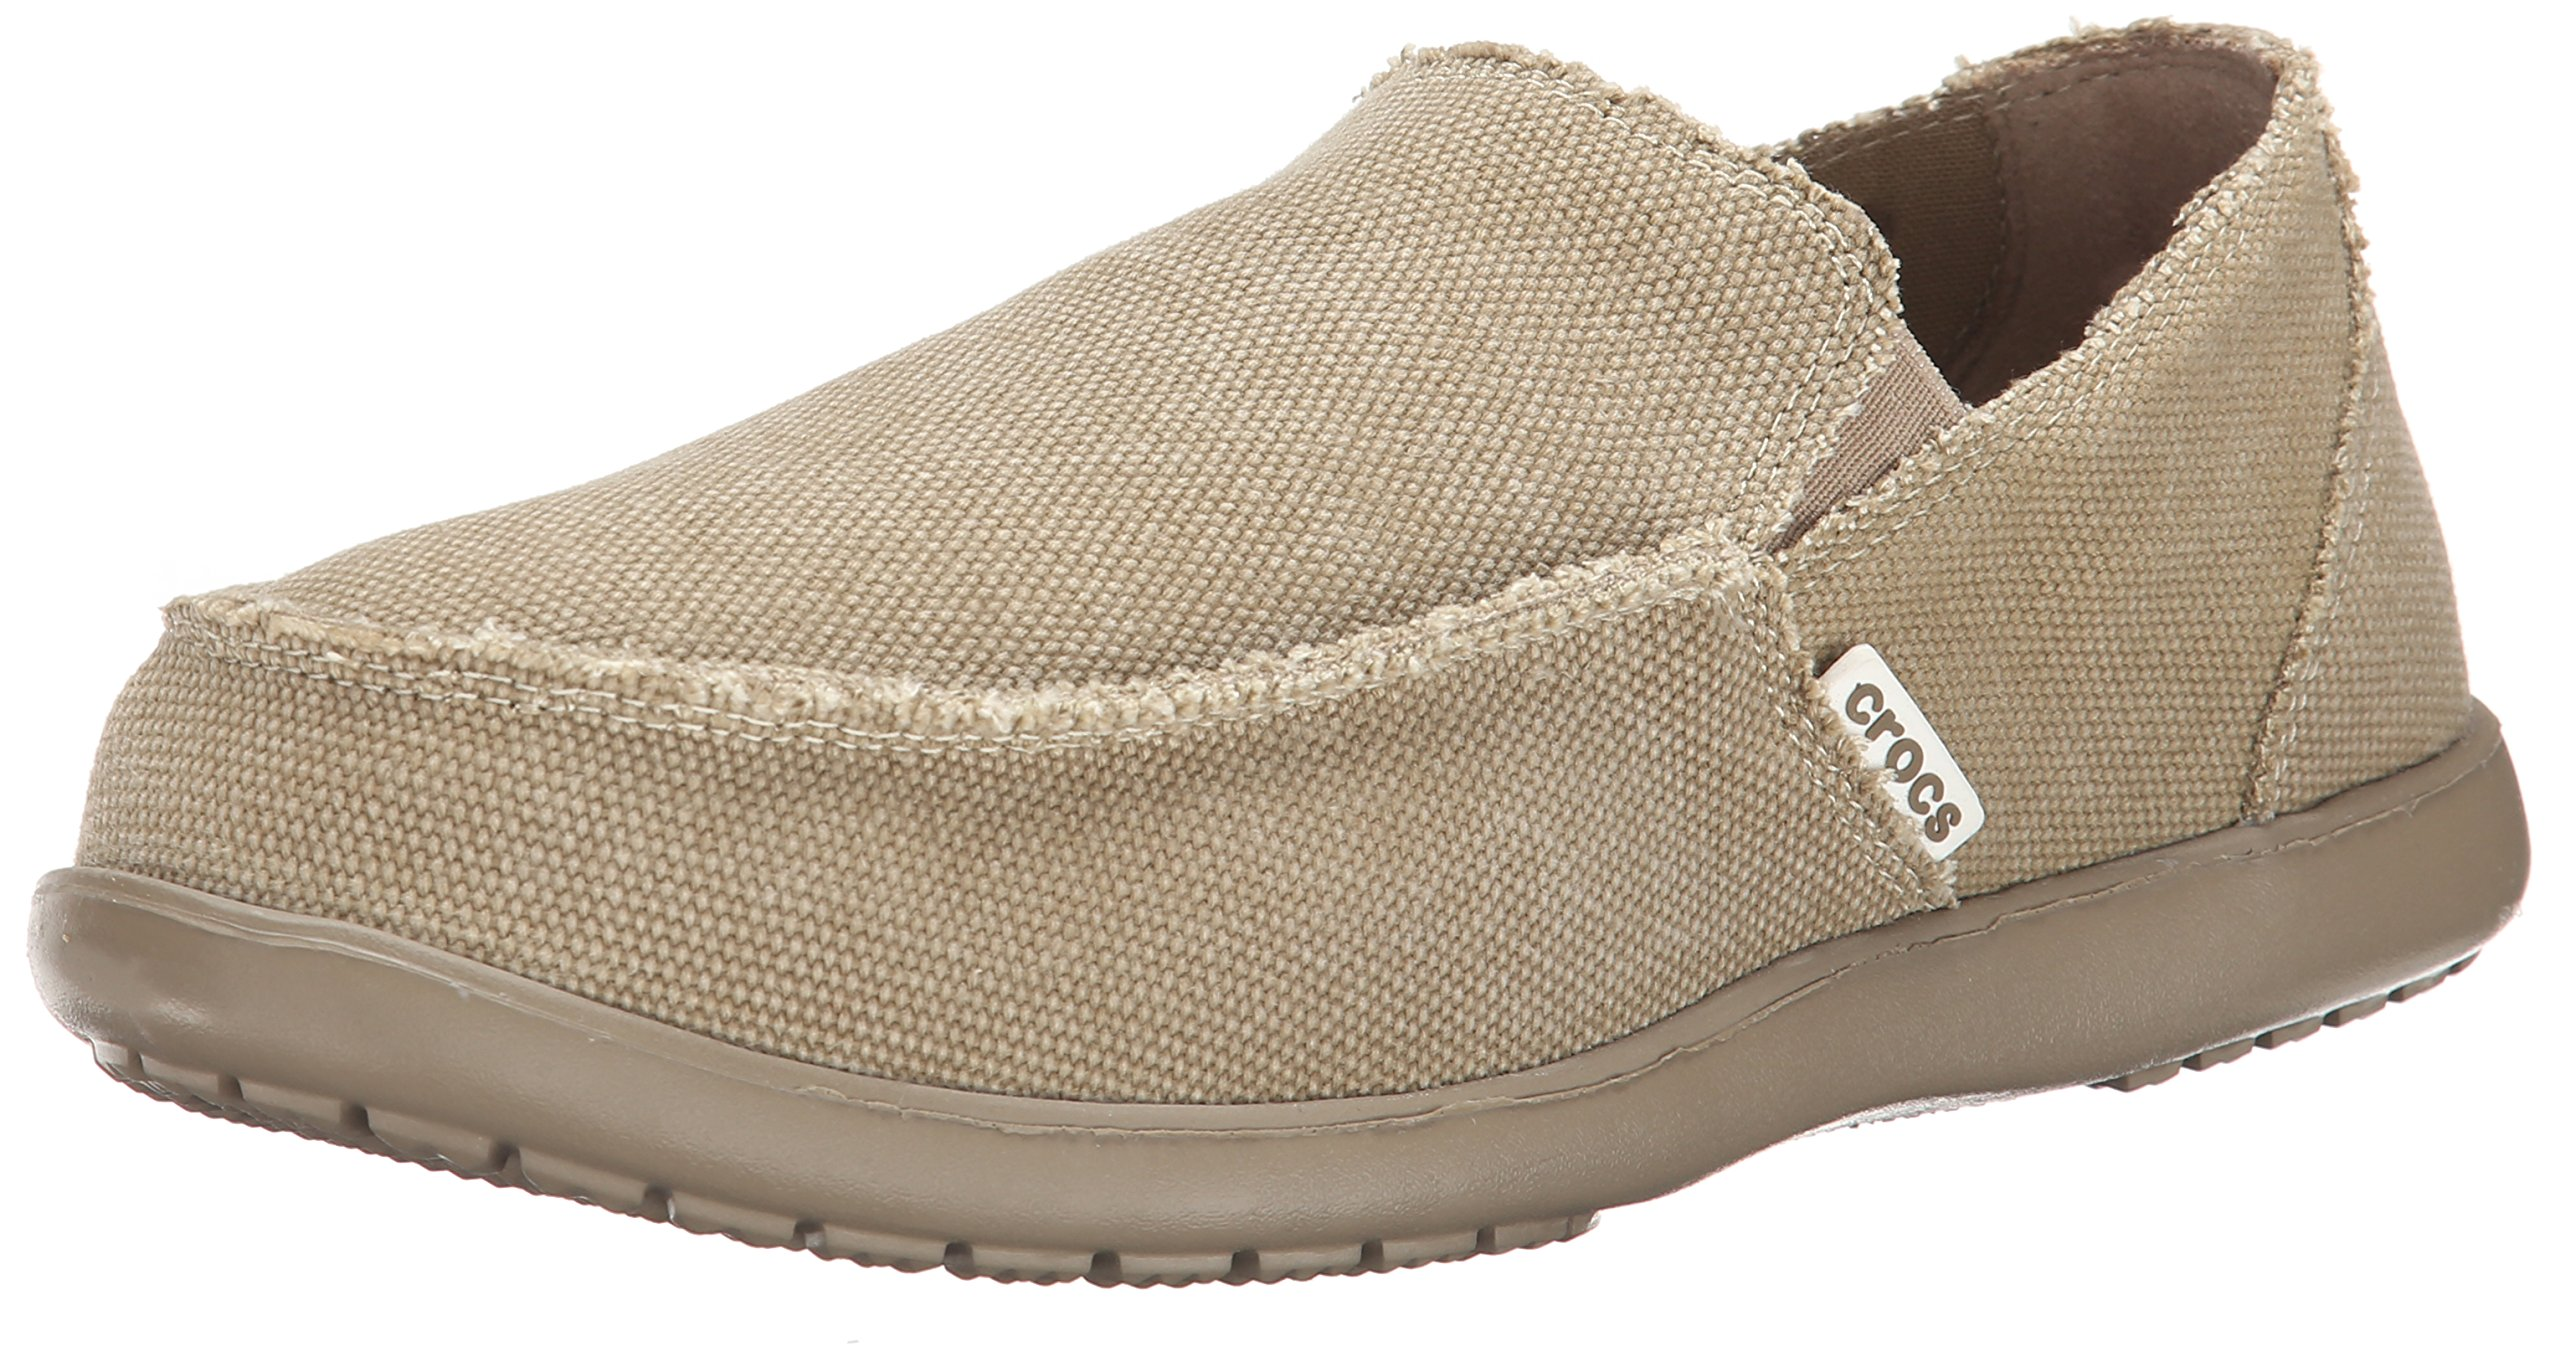 Crocs Men's Santa Cruz Loafer, Khaki Khaki, US 10 by Crocs